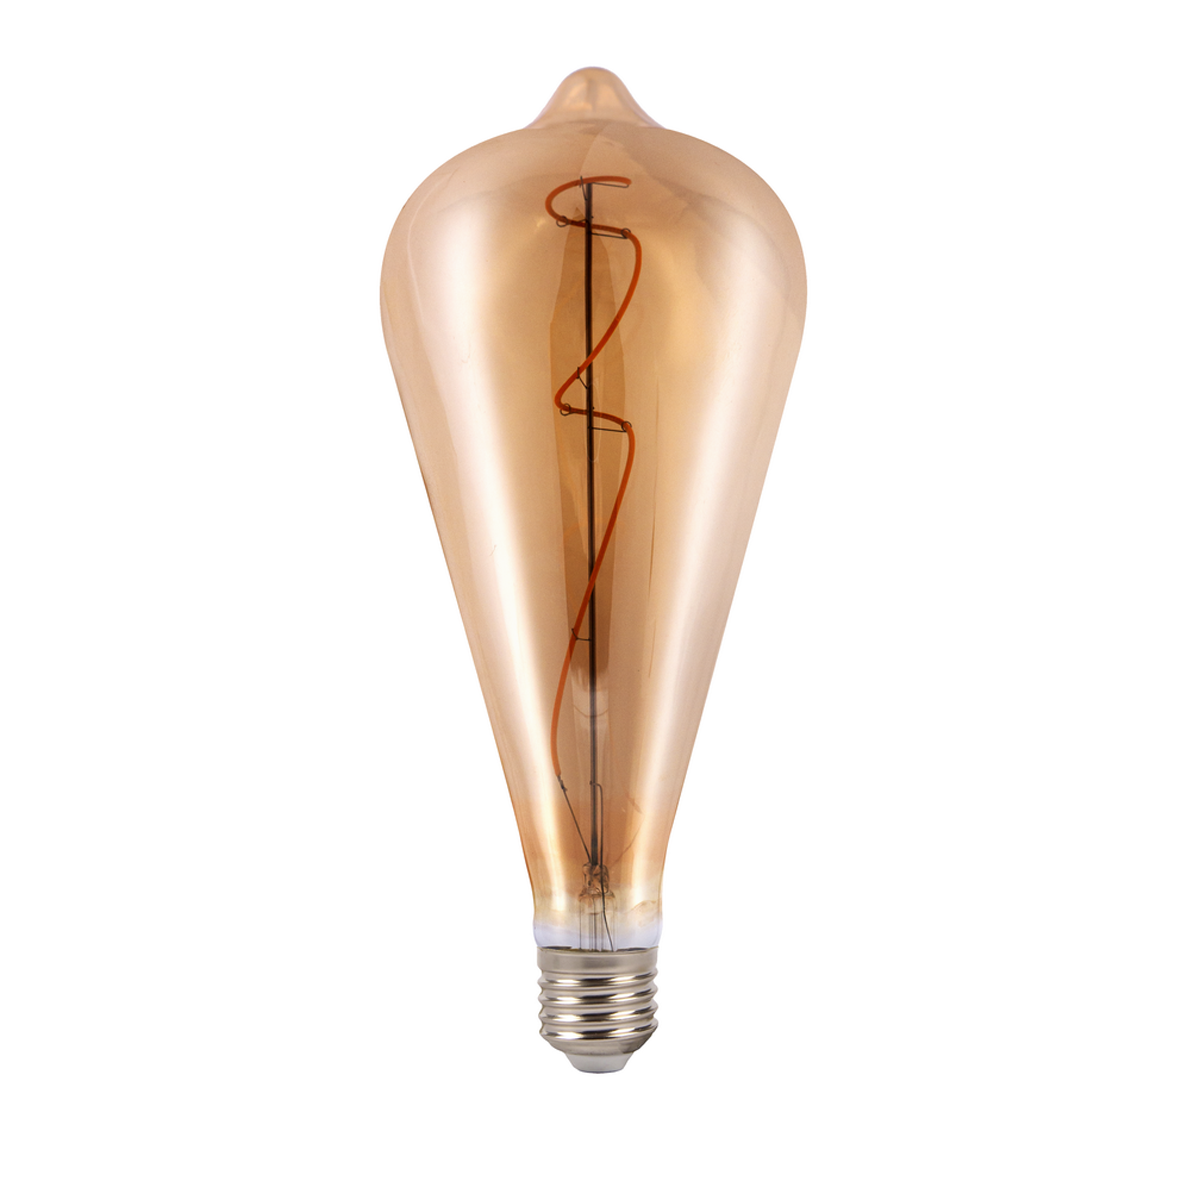 LED lamp 8W big E27 Sleek design, with filament L90-8W